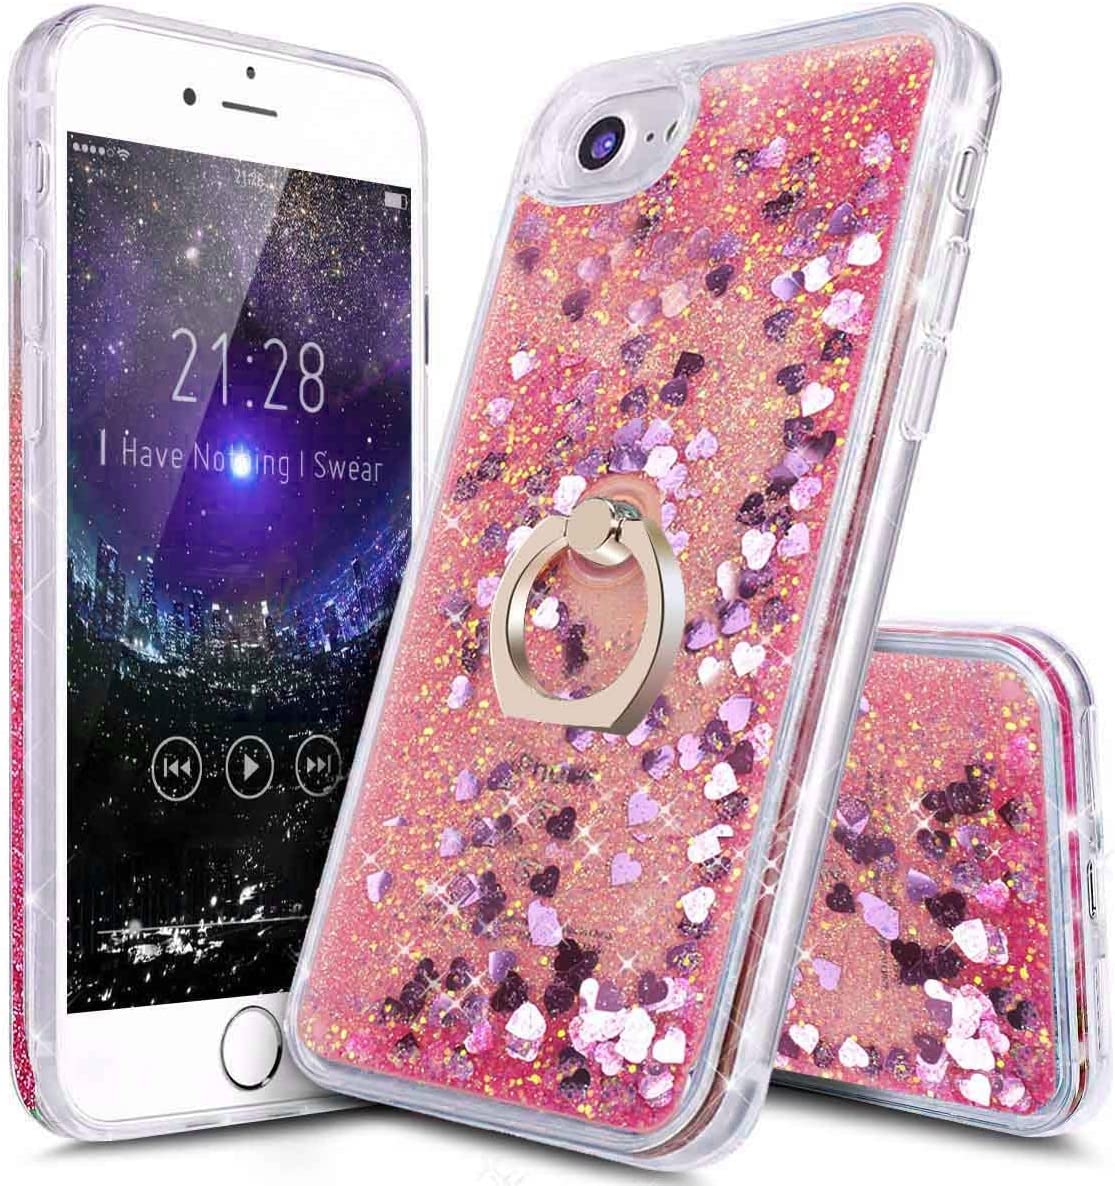 i-Dawn Compatible iPhone 7 Case,iPhone 6s Cute Case,iPhone 6 Case,i-Dawn Transparent Clear Soft TPU Glitter Bling Liquid Floating Quicksand Case Cover with Ring Stand Holder (Pink)